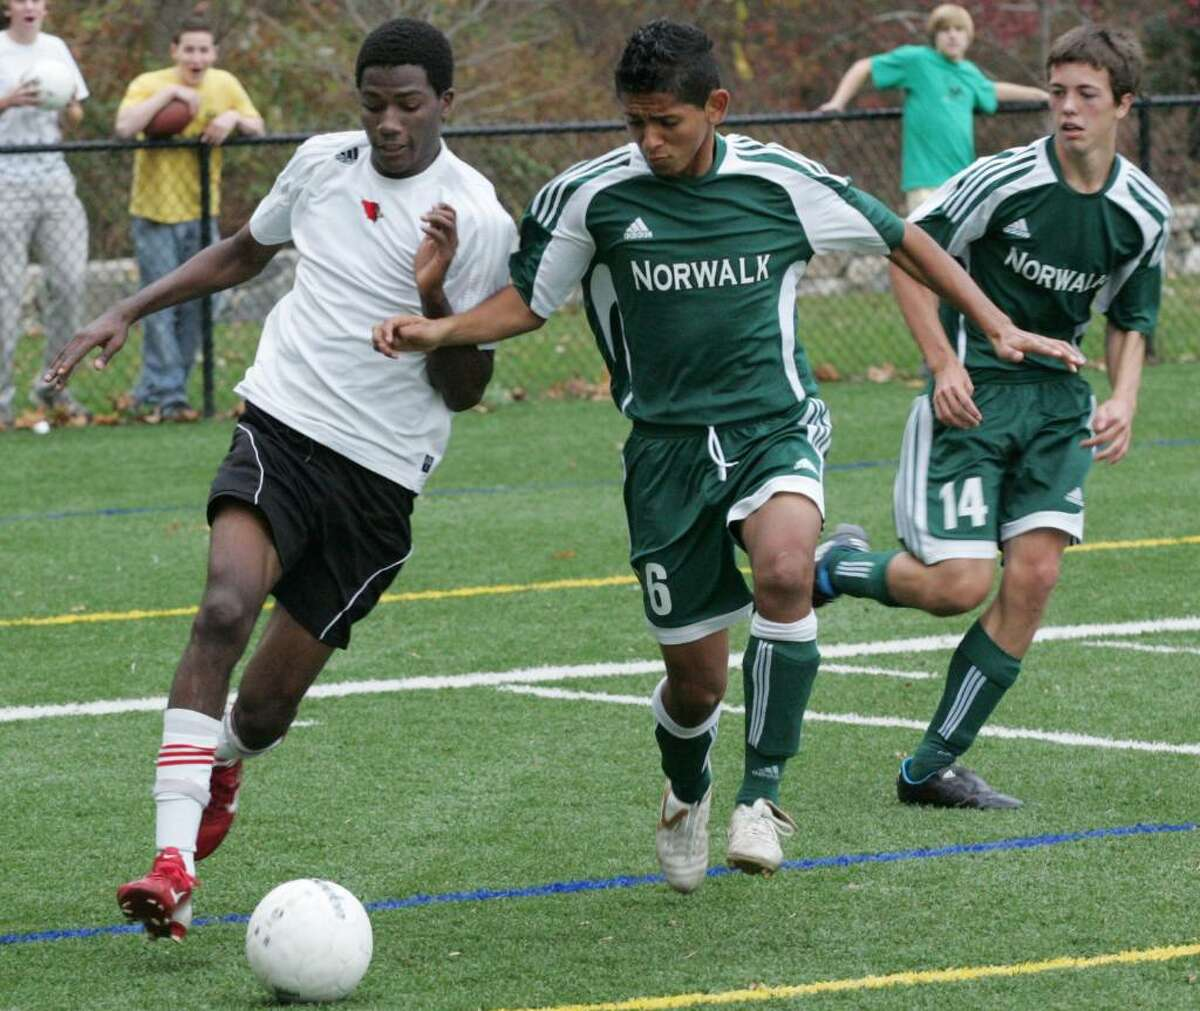 Greenwich High School striker Kenny Doublette makes his way toward the goal as Norwalk defenders Erick Romero and Chris Jeffrey put on the pressure. Mr. Doublette scored the only goal in the Cardinal's win over Norwalk.